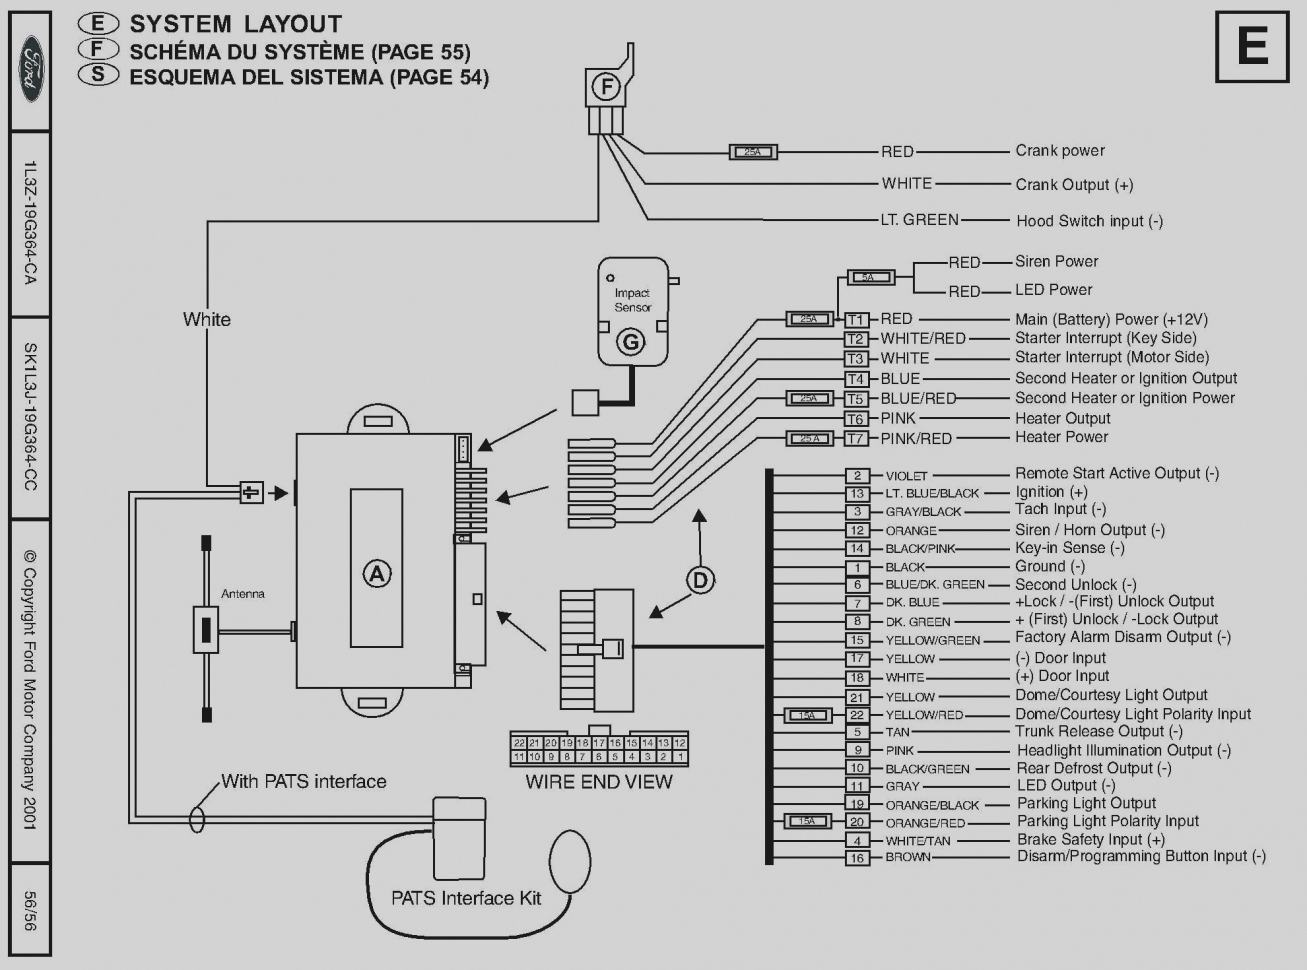 Automotive Lift Wiring Diagram New Bendpak Century Dl1056 Free Honda Motorcycle Repair Diagrams